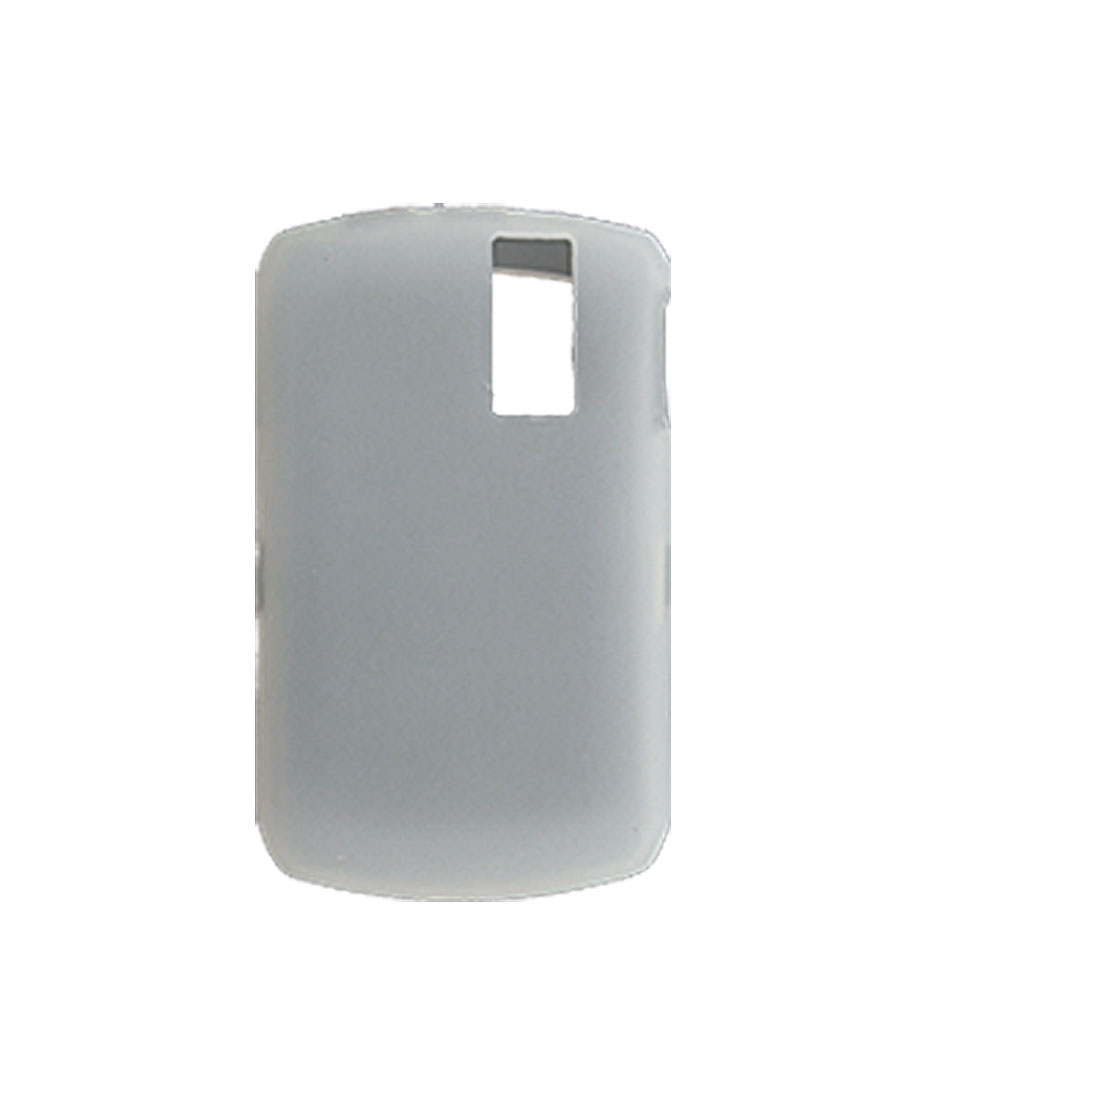 Clear White Silicone Case for Blackberry Curve 8300 / 8310 / 8320